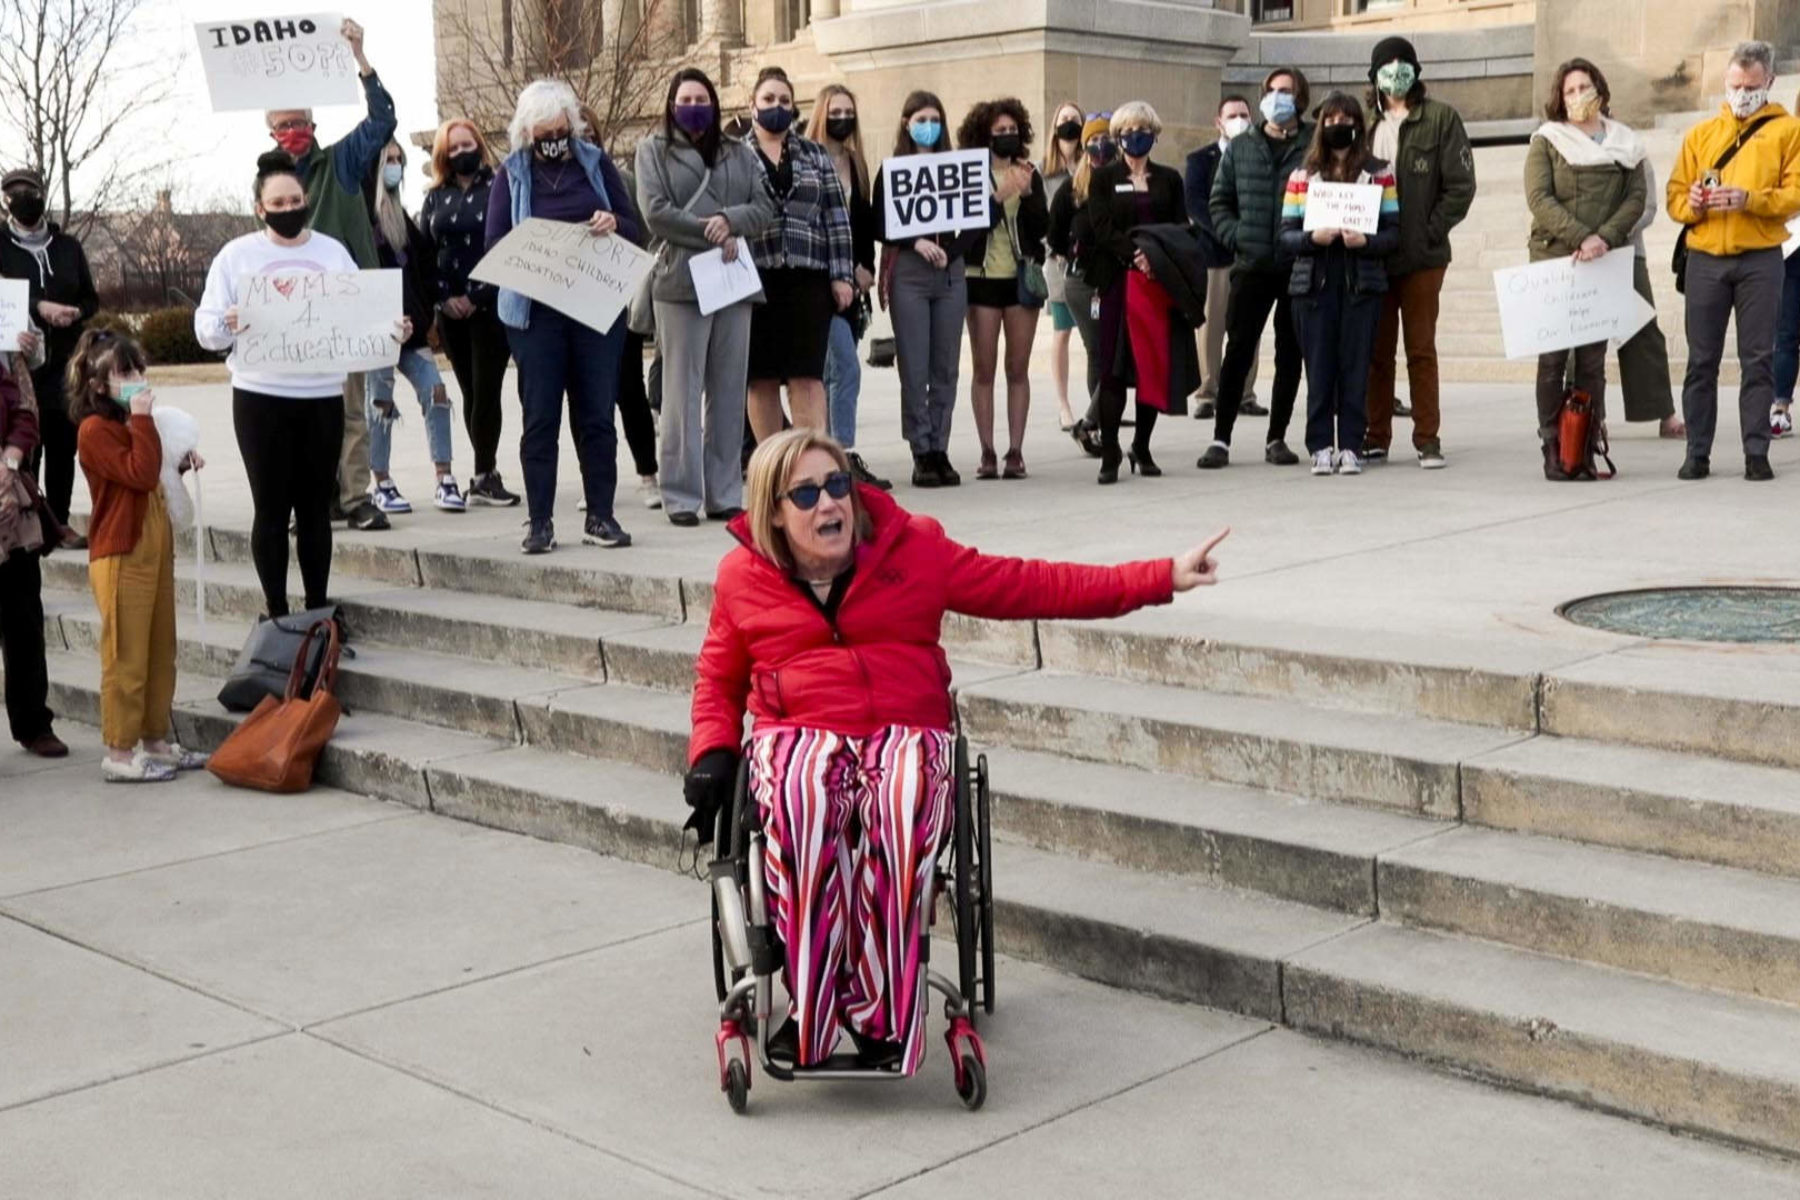 Protest over child care funding in Idaho